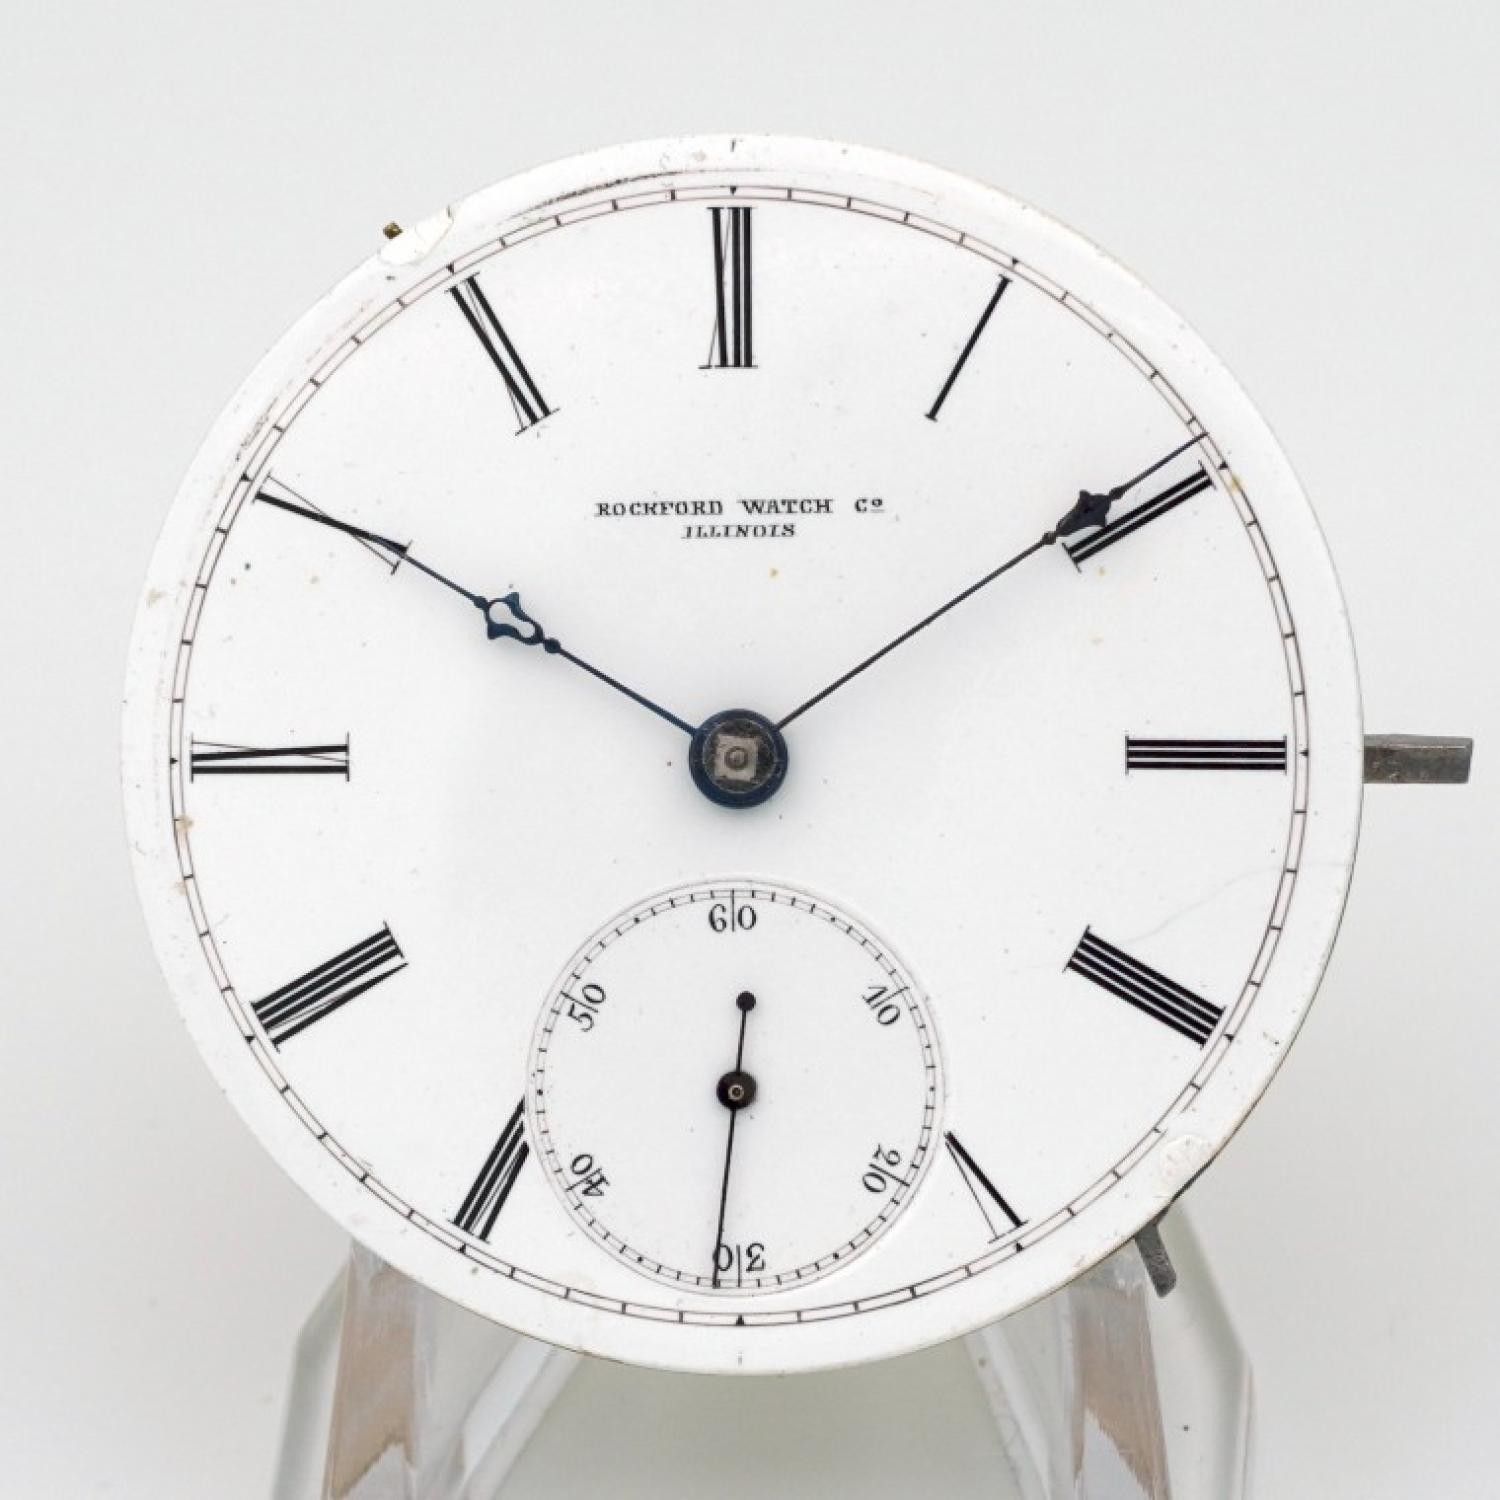 Image of Rockford 11 Jewels #7238 Dial